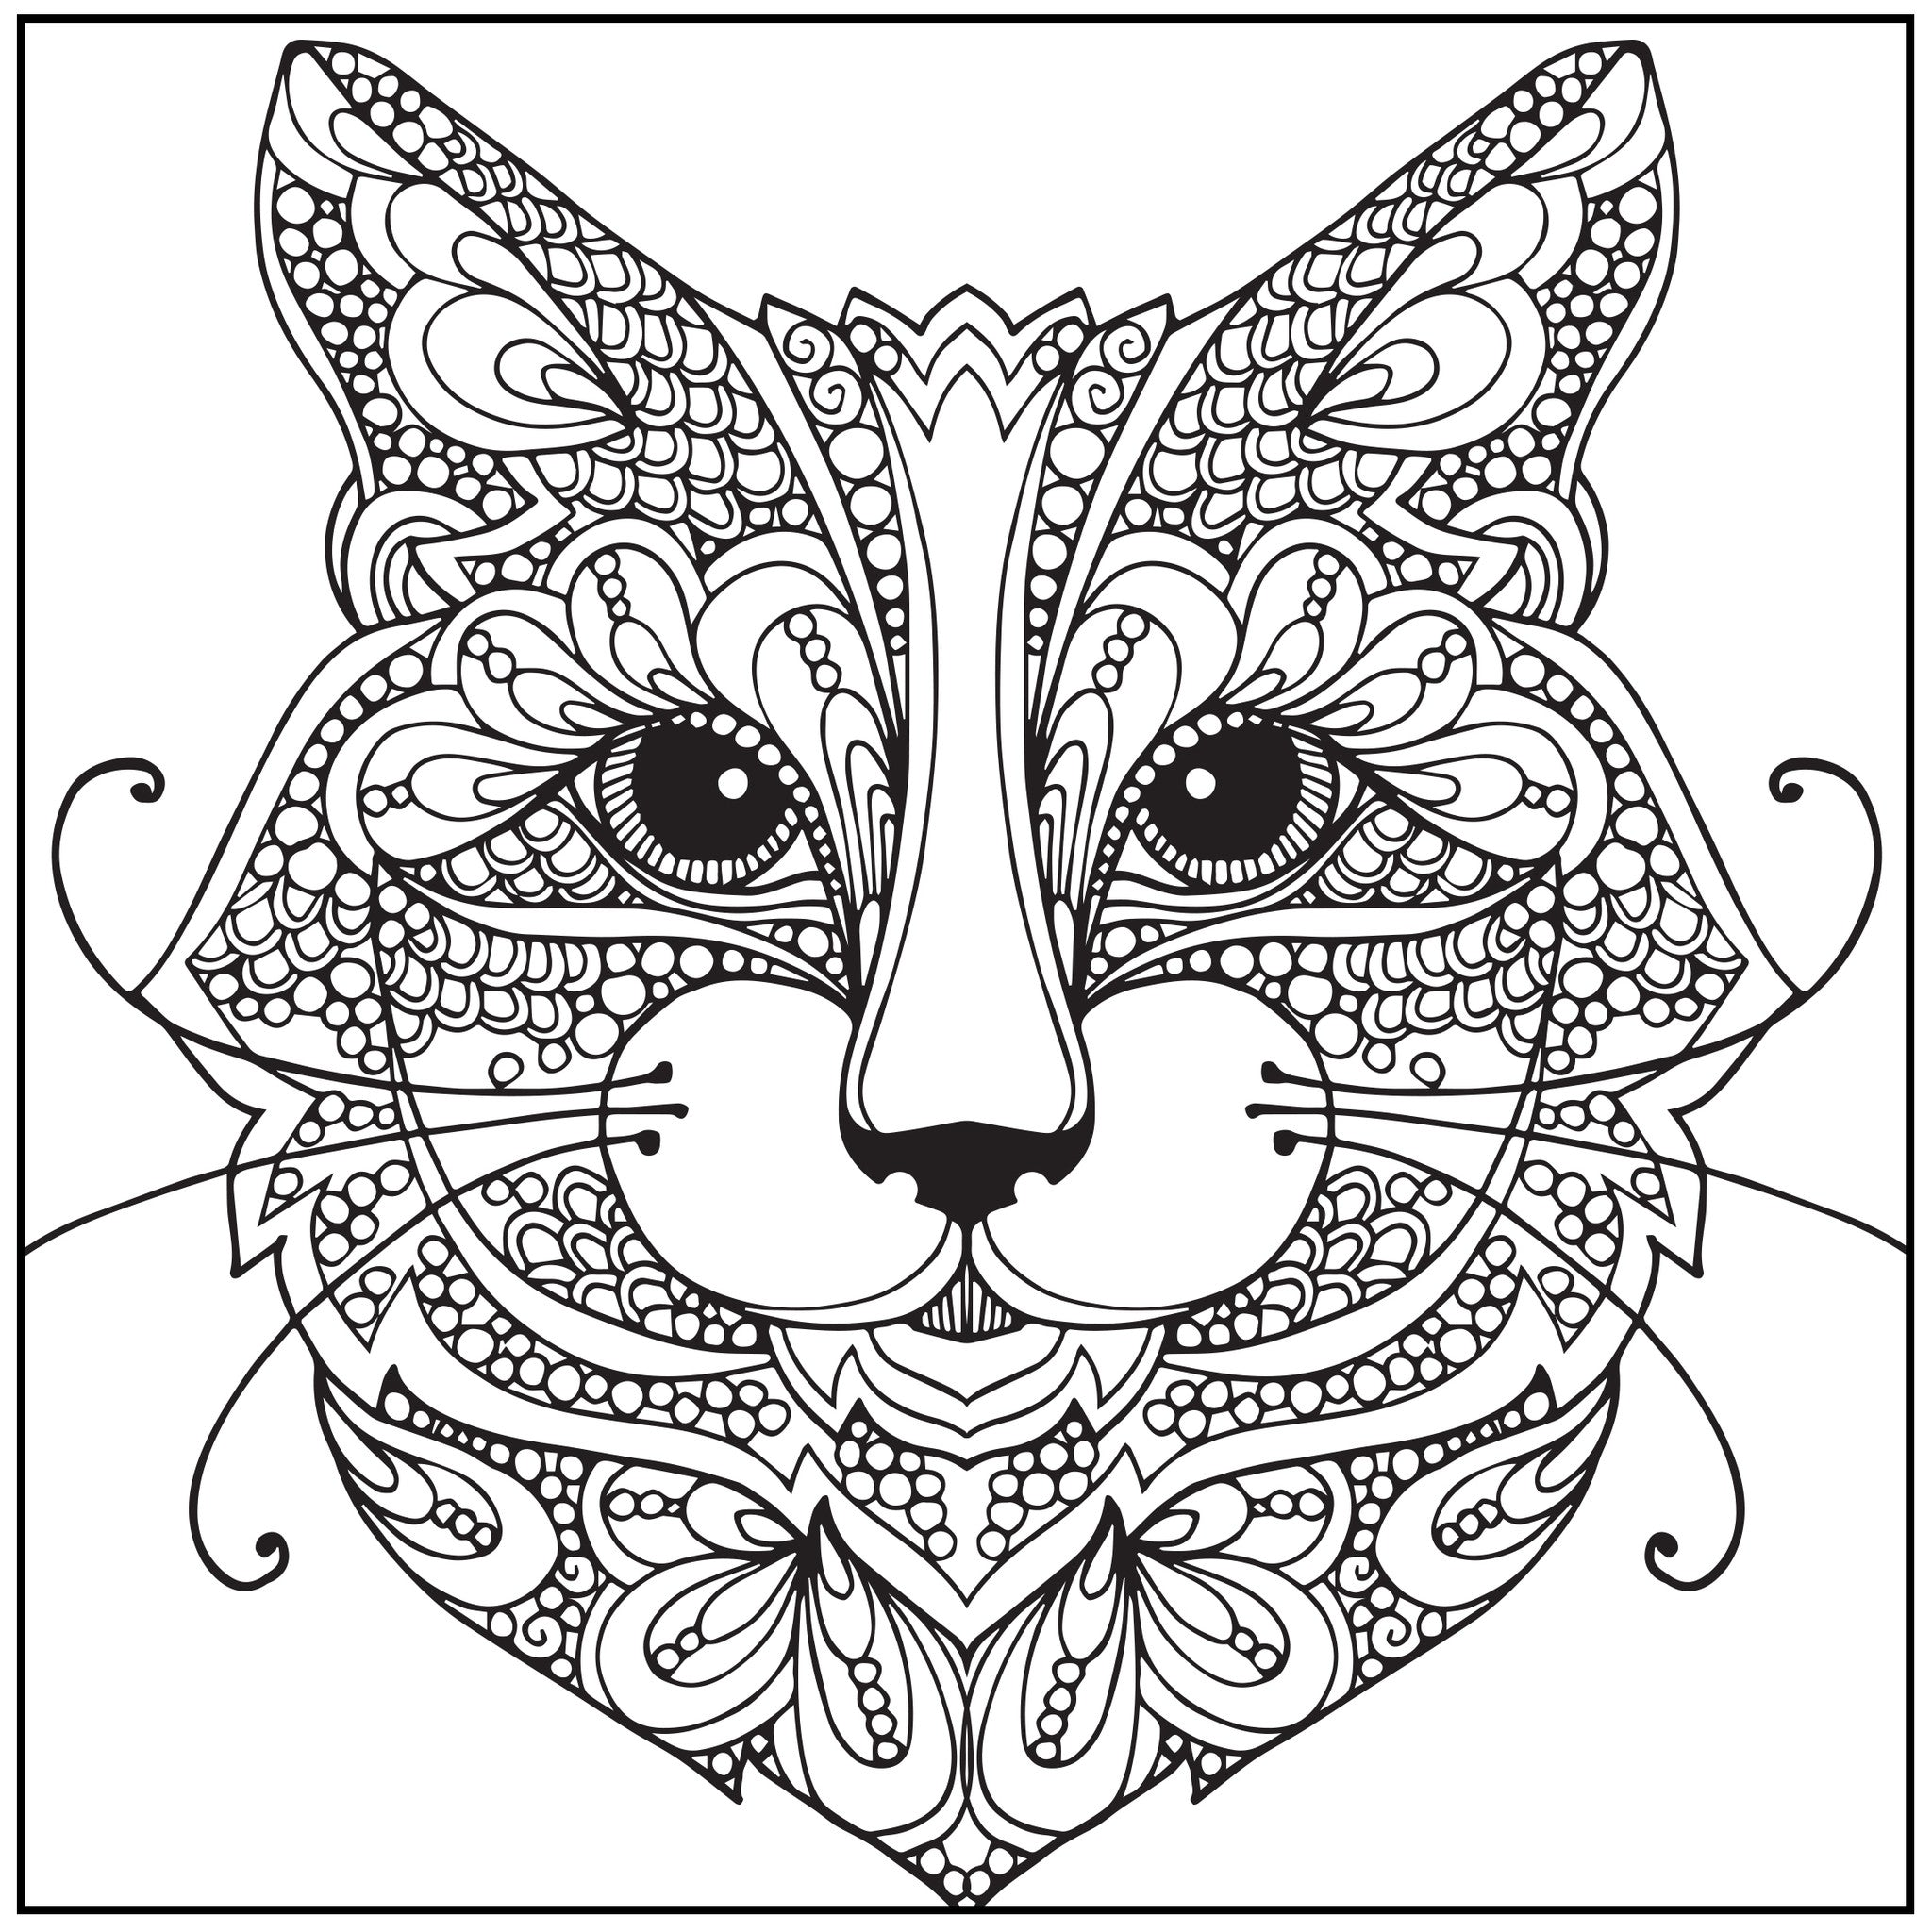 blank kitten coloring book pages - photo#7